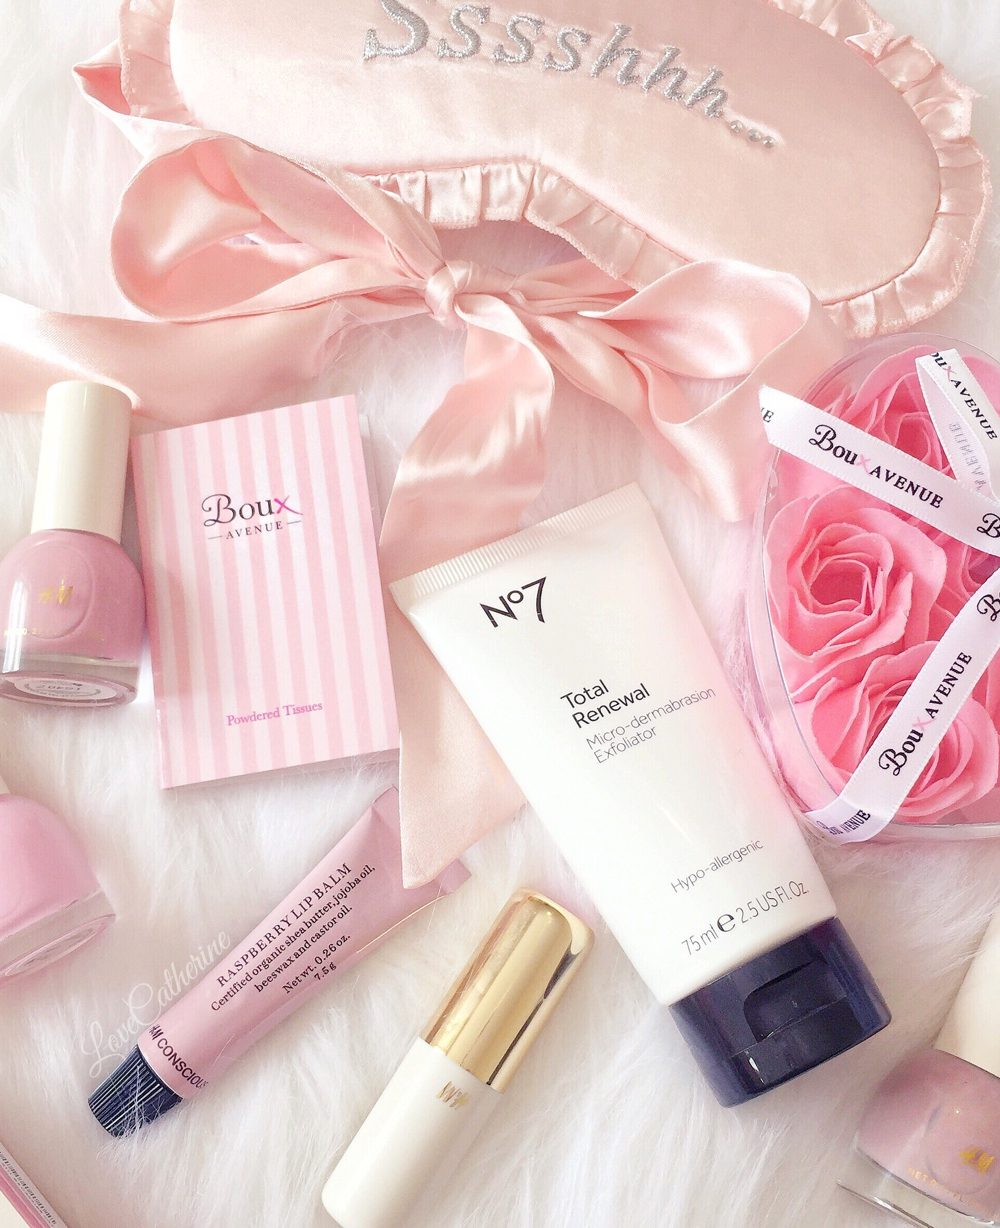 Blush Pink Beauty Buys